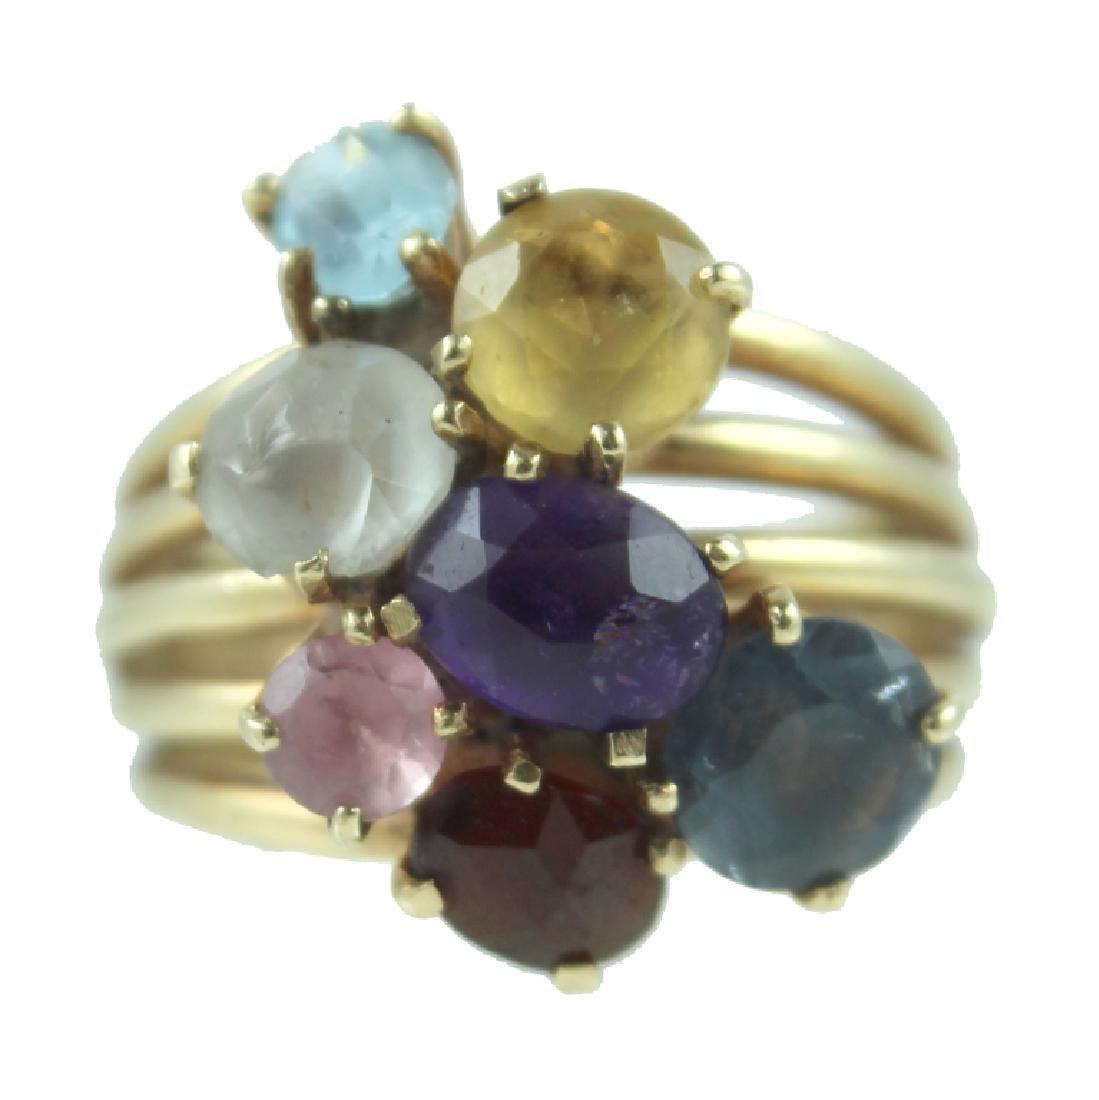 CUTE 14 KARAT COLORED STONE RING